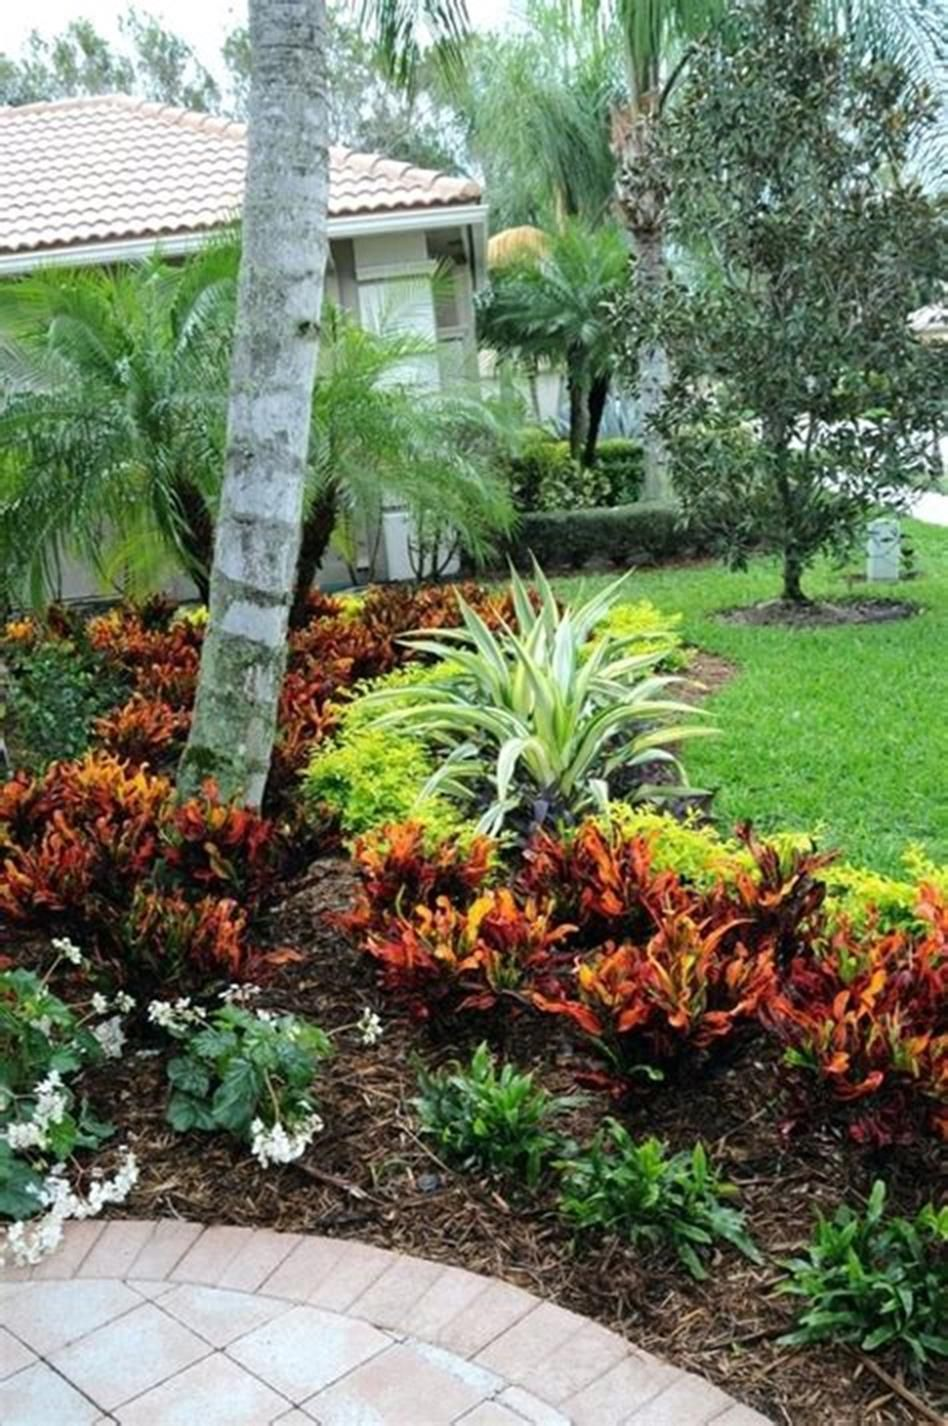 42 Best Front Yard Landscaping Ideas On A Budget Low Maintenance 28 Florida Landscaping Low Maintenance Garden Design Tropical Landscaping